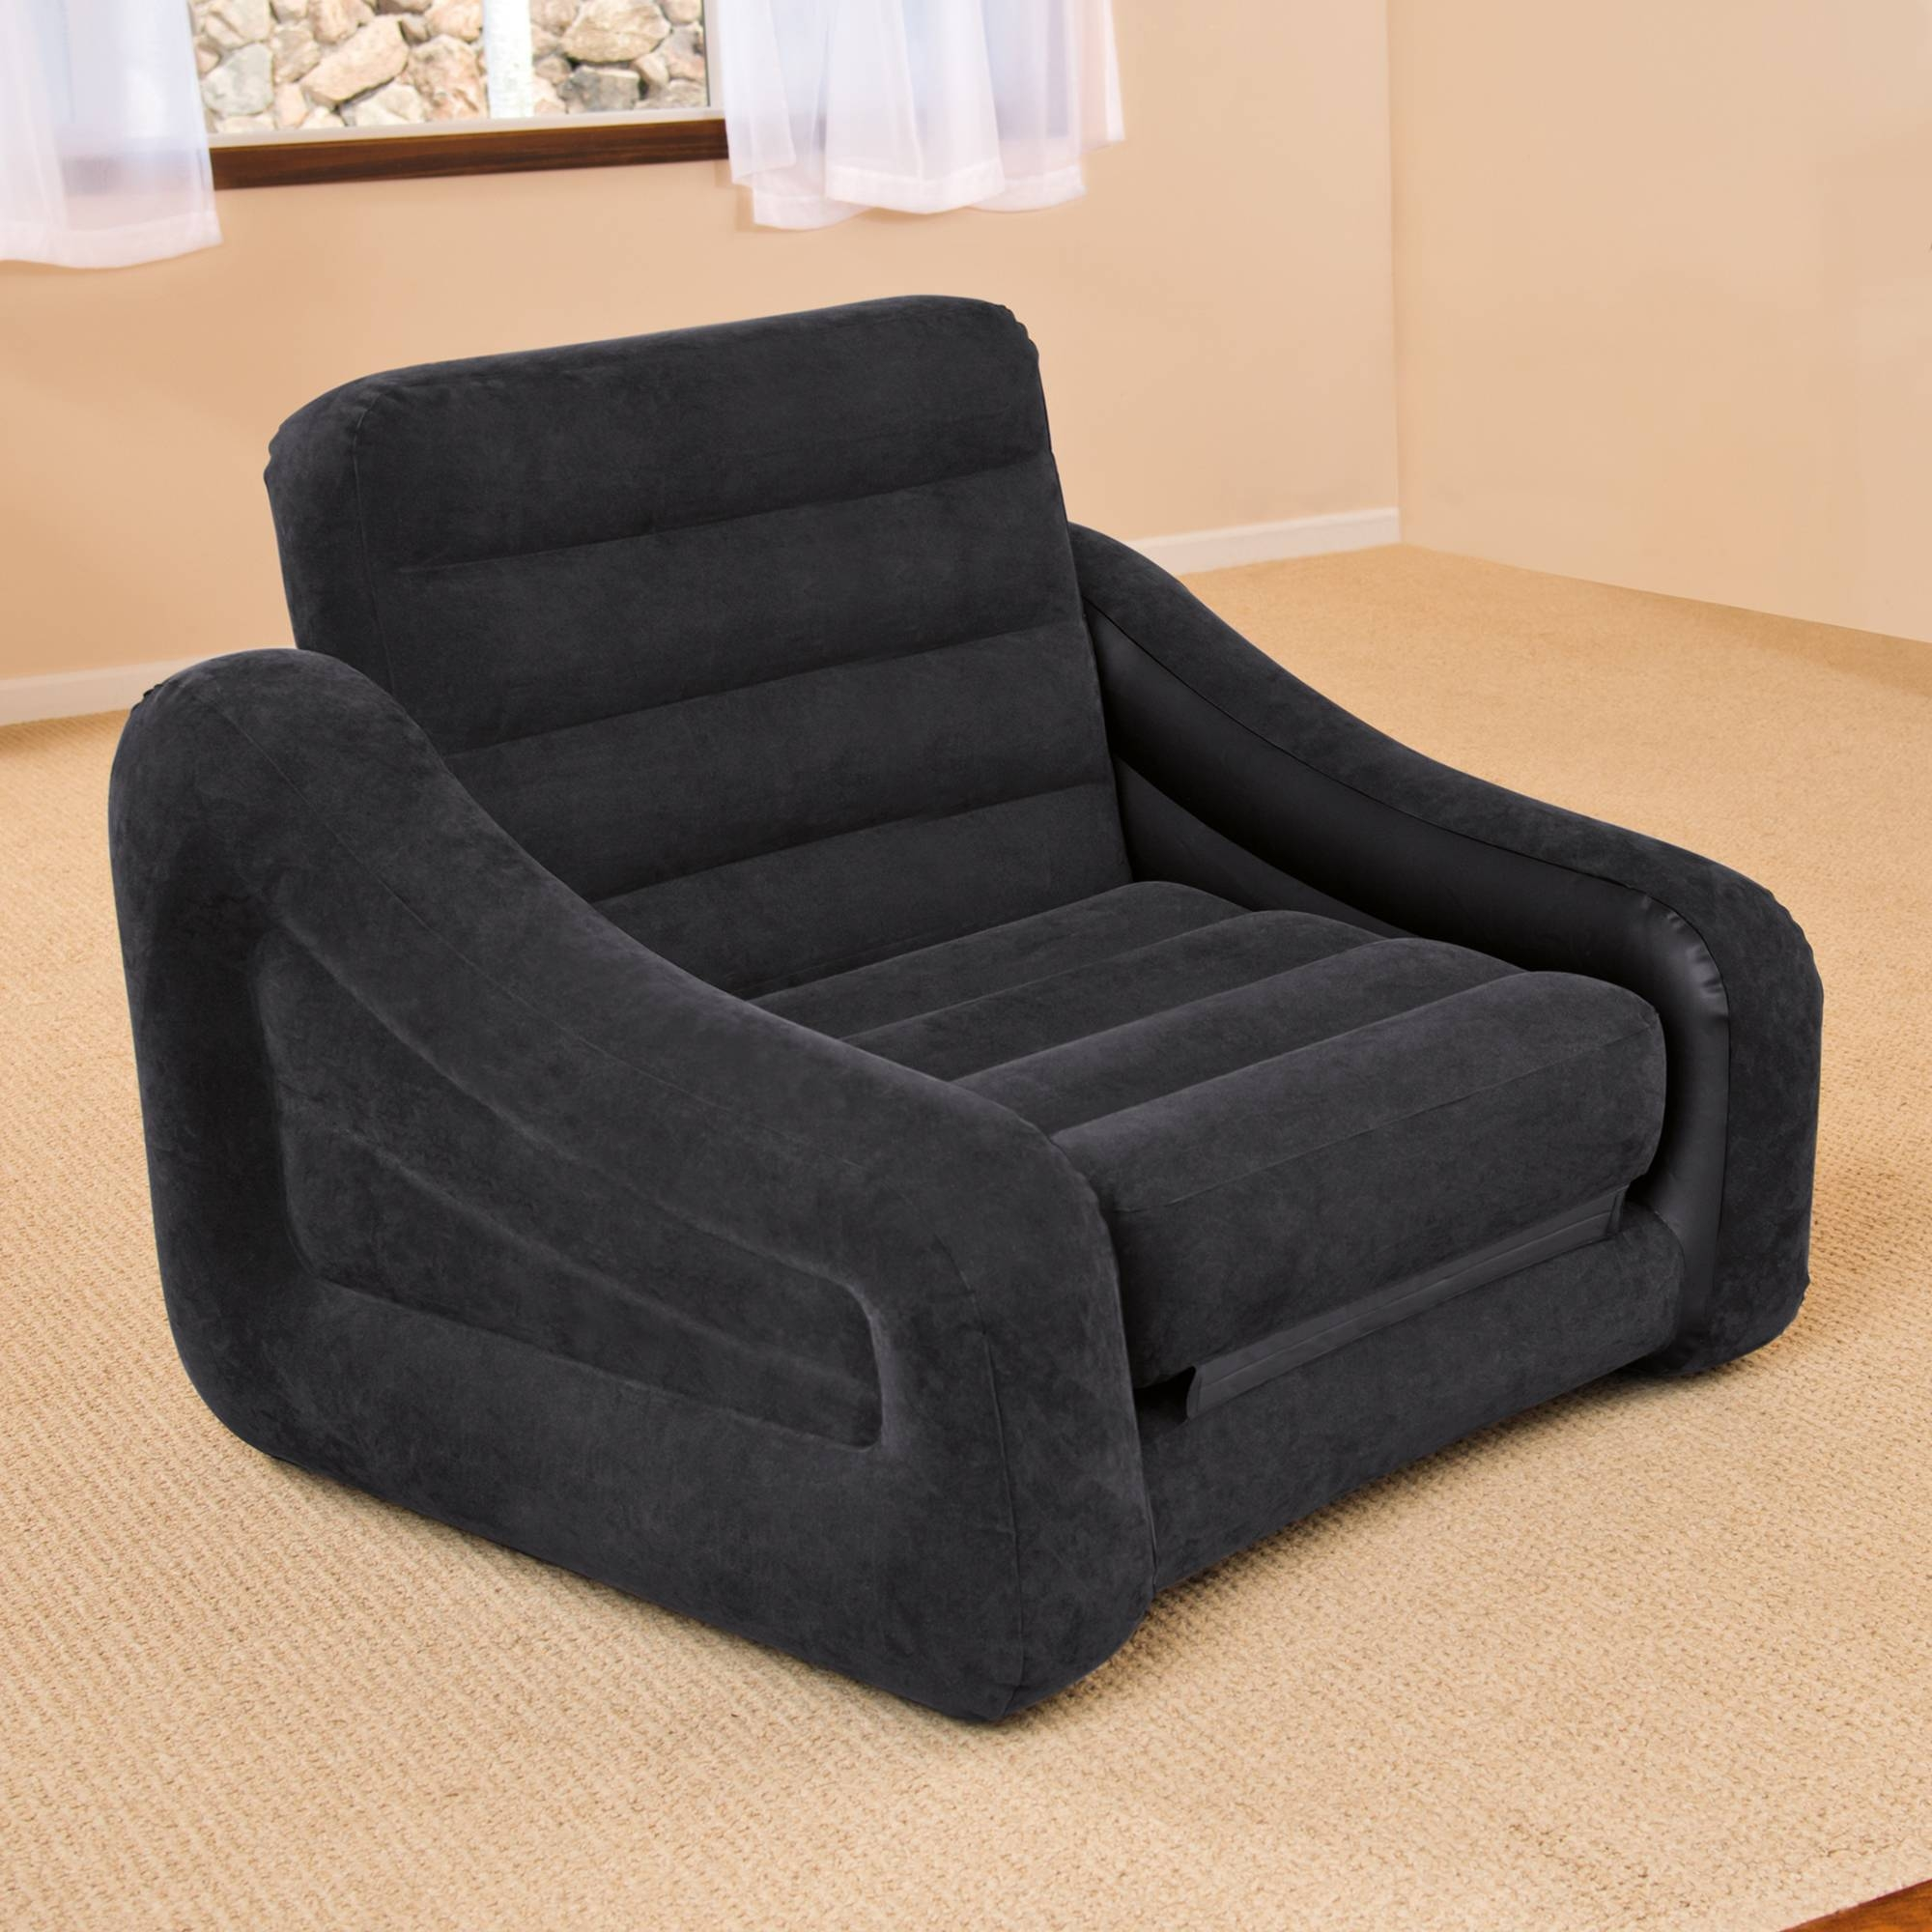 Intex Inflatable Pull-Out Chair And Twin Bed Mattress Sleeper pertaining to Intex Sleep Sofas (Image 5 of 15)